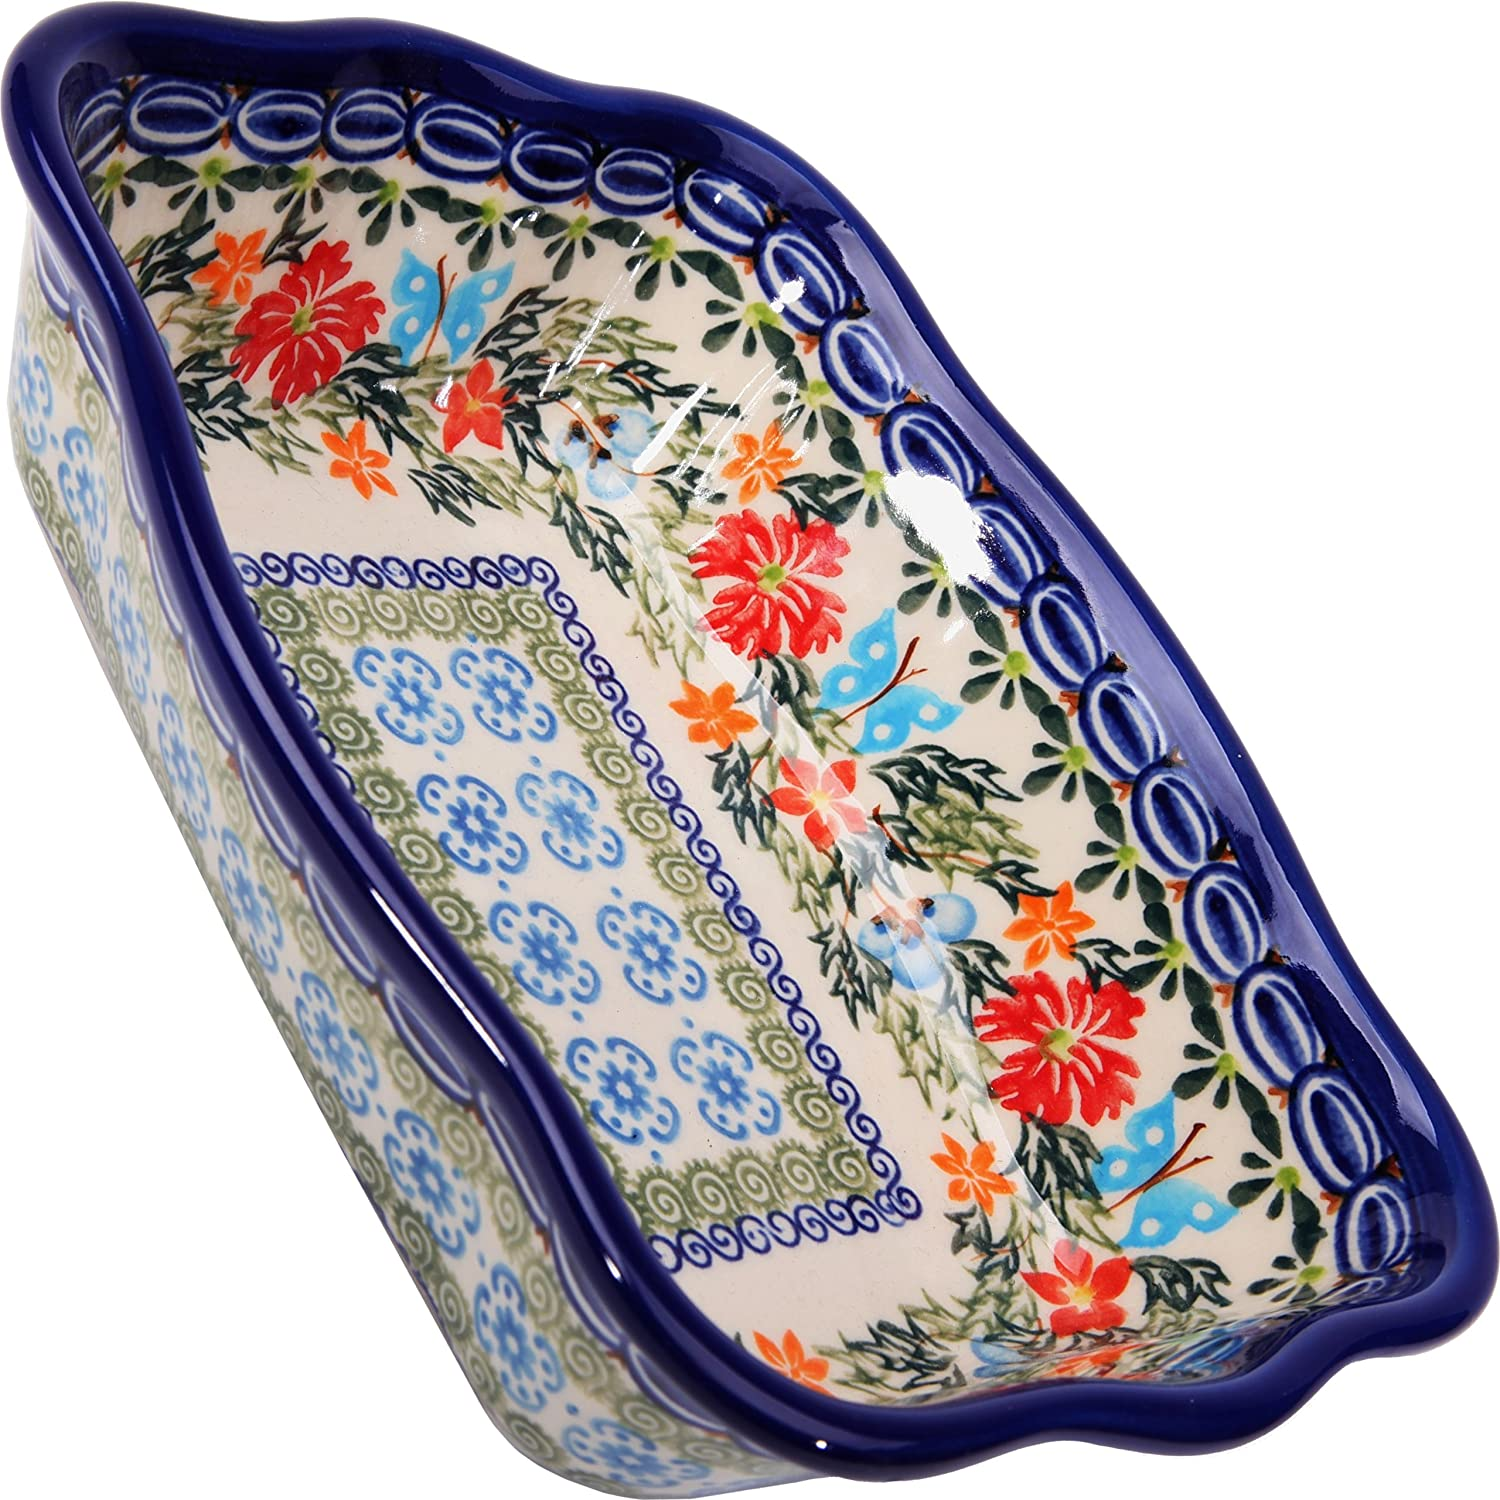 Polish Pottery Ceramika Boleslawiec Fala Baker Small, 7-3/4-Inch by 6-1/8-Inch, 3 Cups, Royal Blue Patterns with Red Cornflower and Blue Butterflies Motif Lidia's Polish Pottery Inc. 1208-238